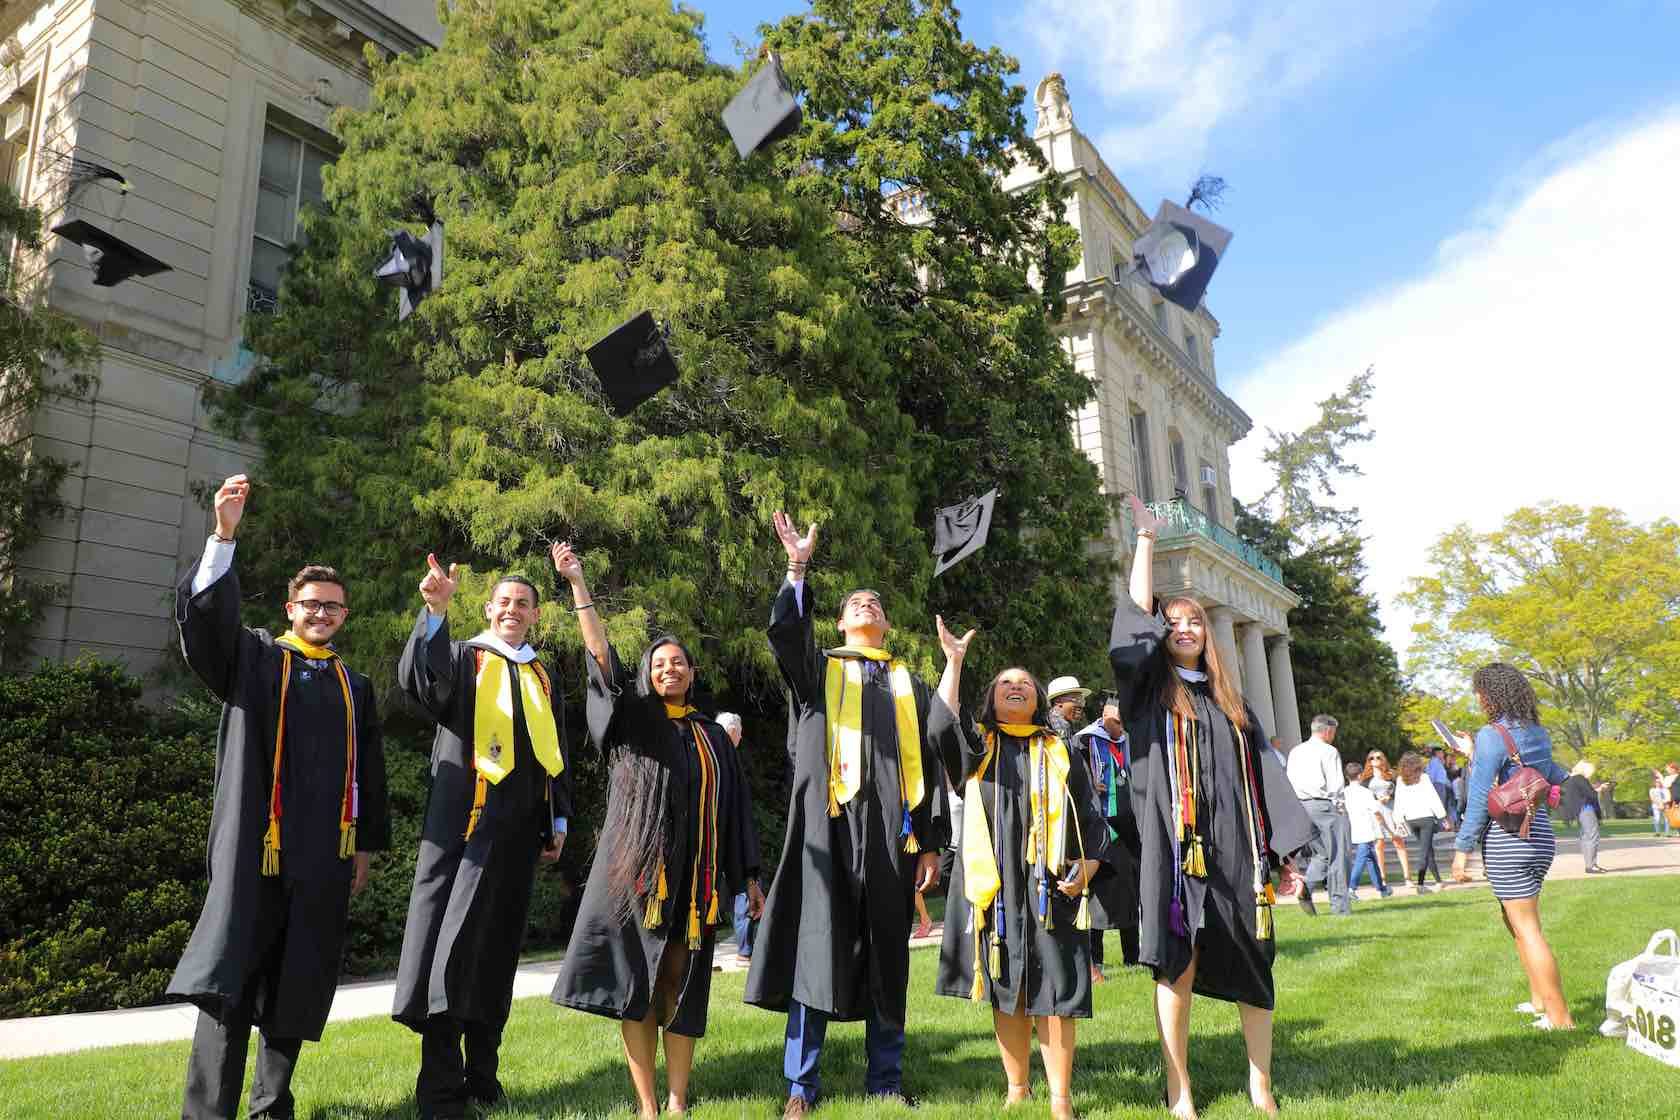 Photo of Monmouth University Graduating Students Throwing Mortarboards in the Air